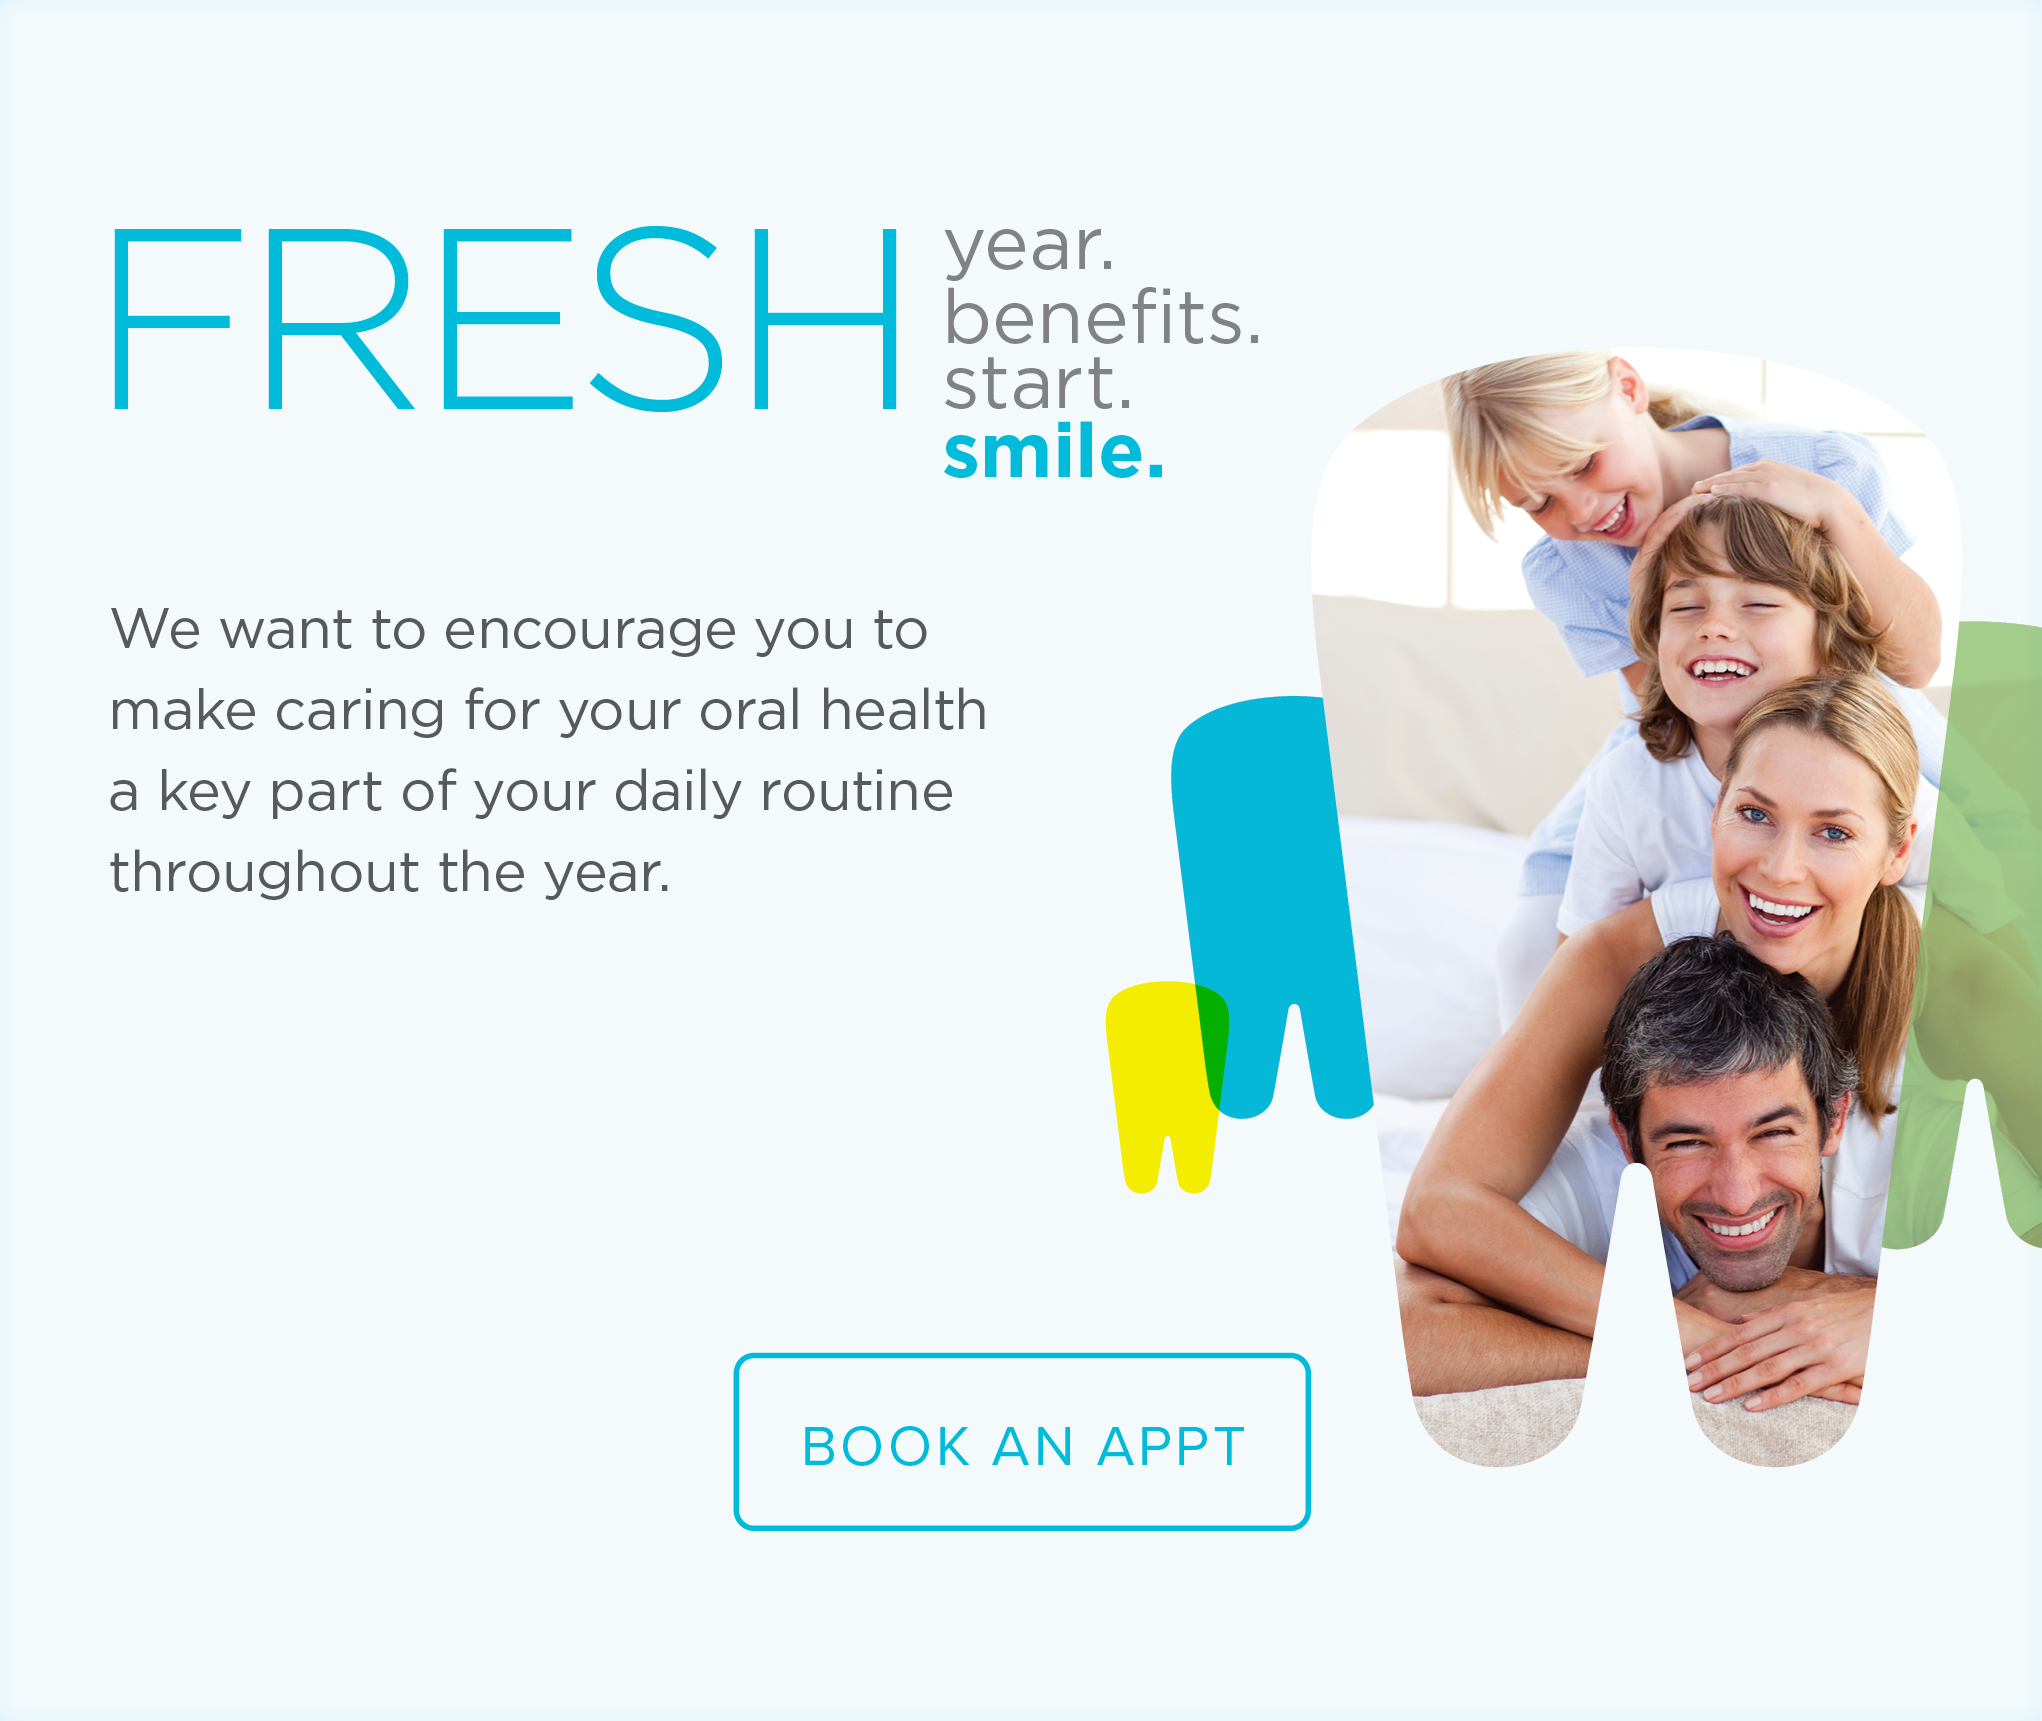 Mountain Dental Group - Make the Most of Your Benefits